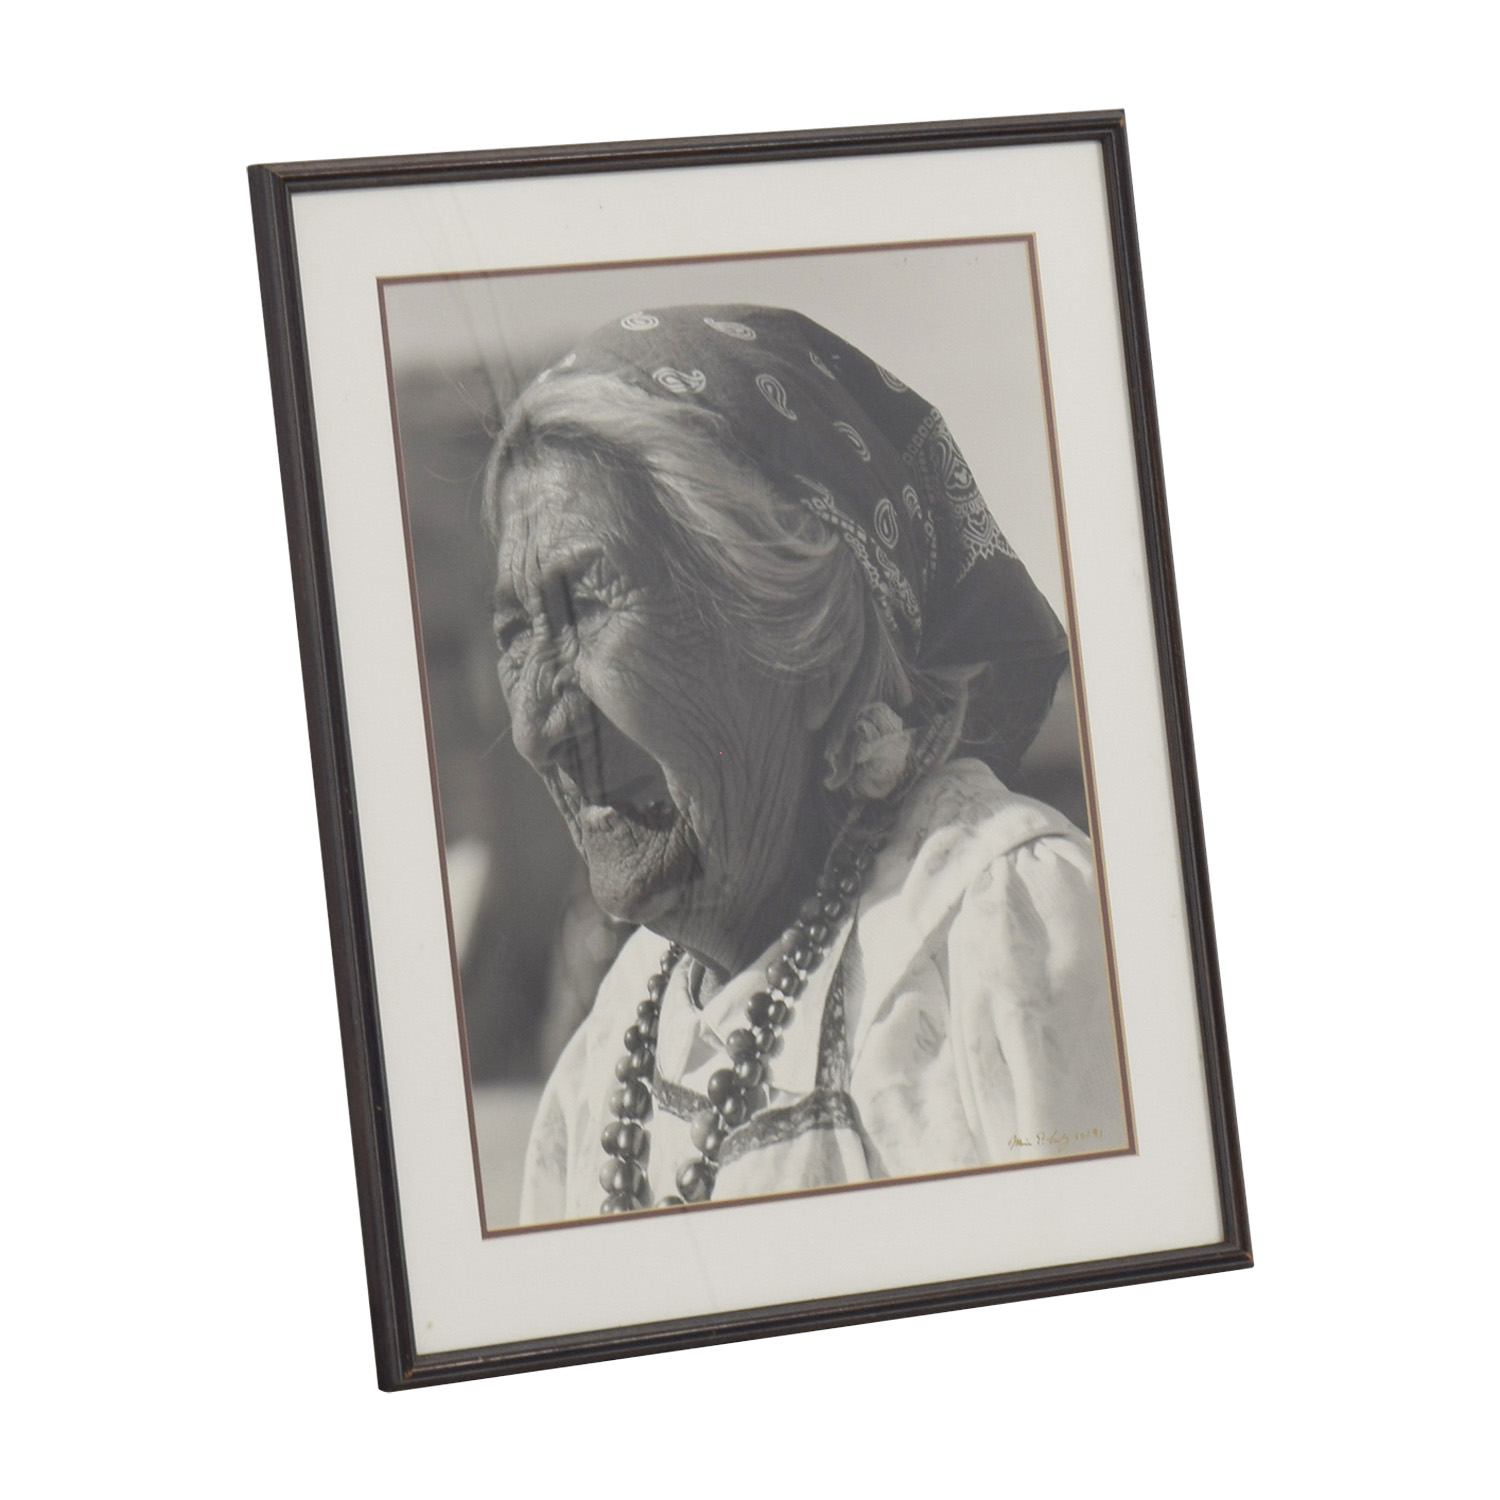 Elderly Woman Framed Artwork for sale